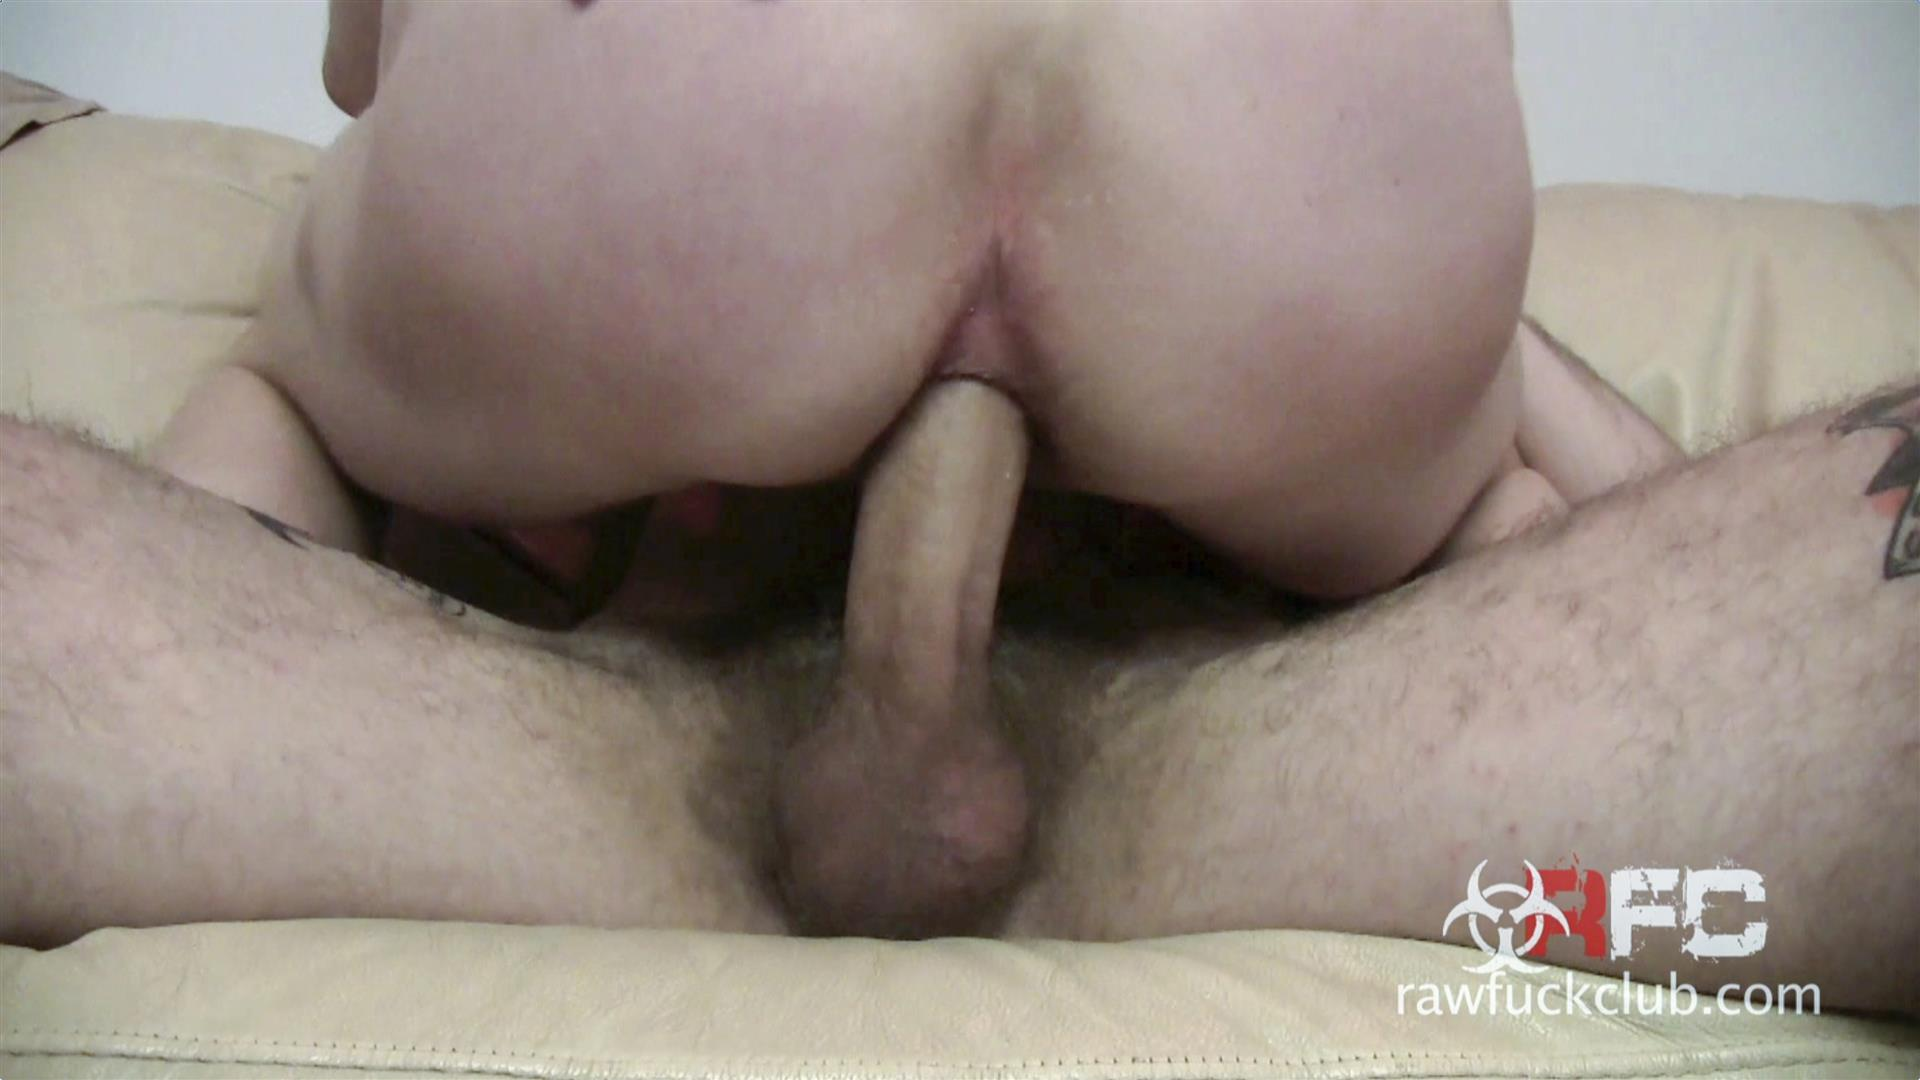 Raw-Fuck-Club-Luke-Harding-and-Vincent-Rush-Big-Cock-Guys-Barebacking-Amateur-Gay-Porn-04 Male Stripper Luke Harding Barebacking A Stranger